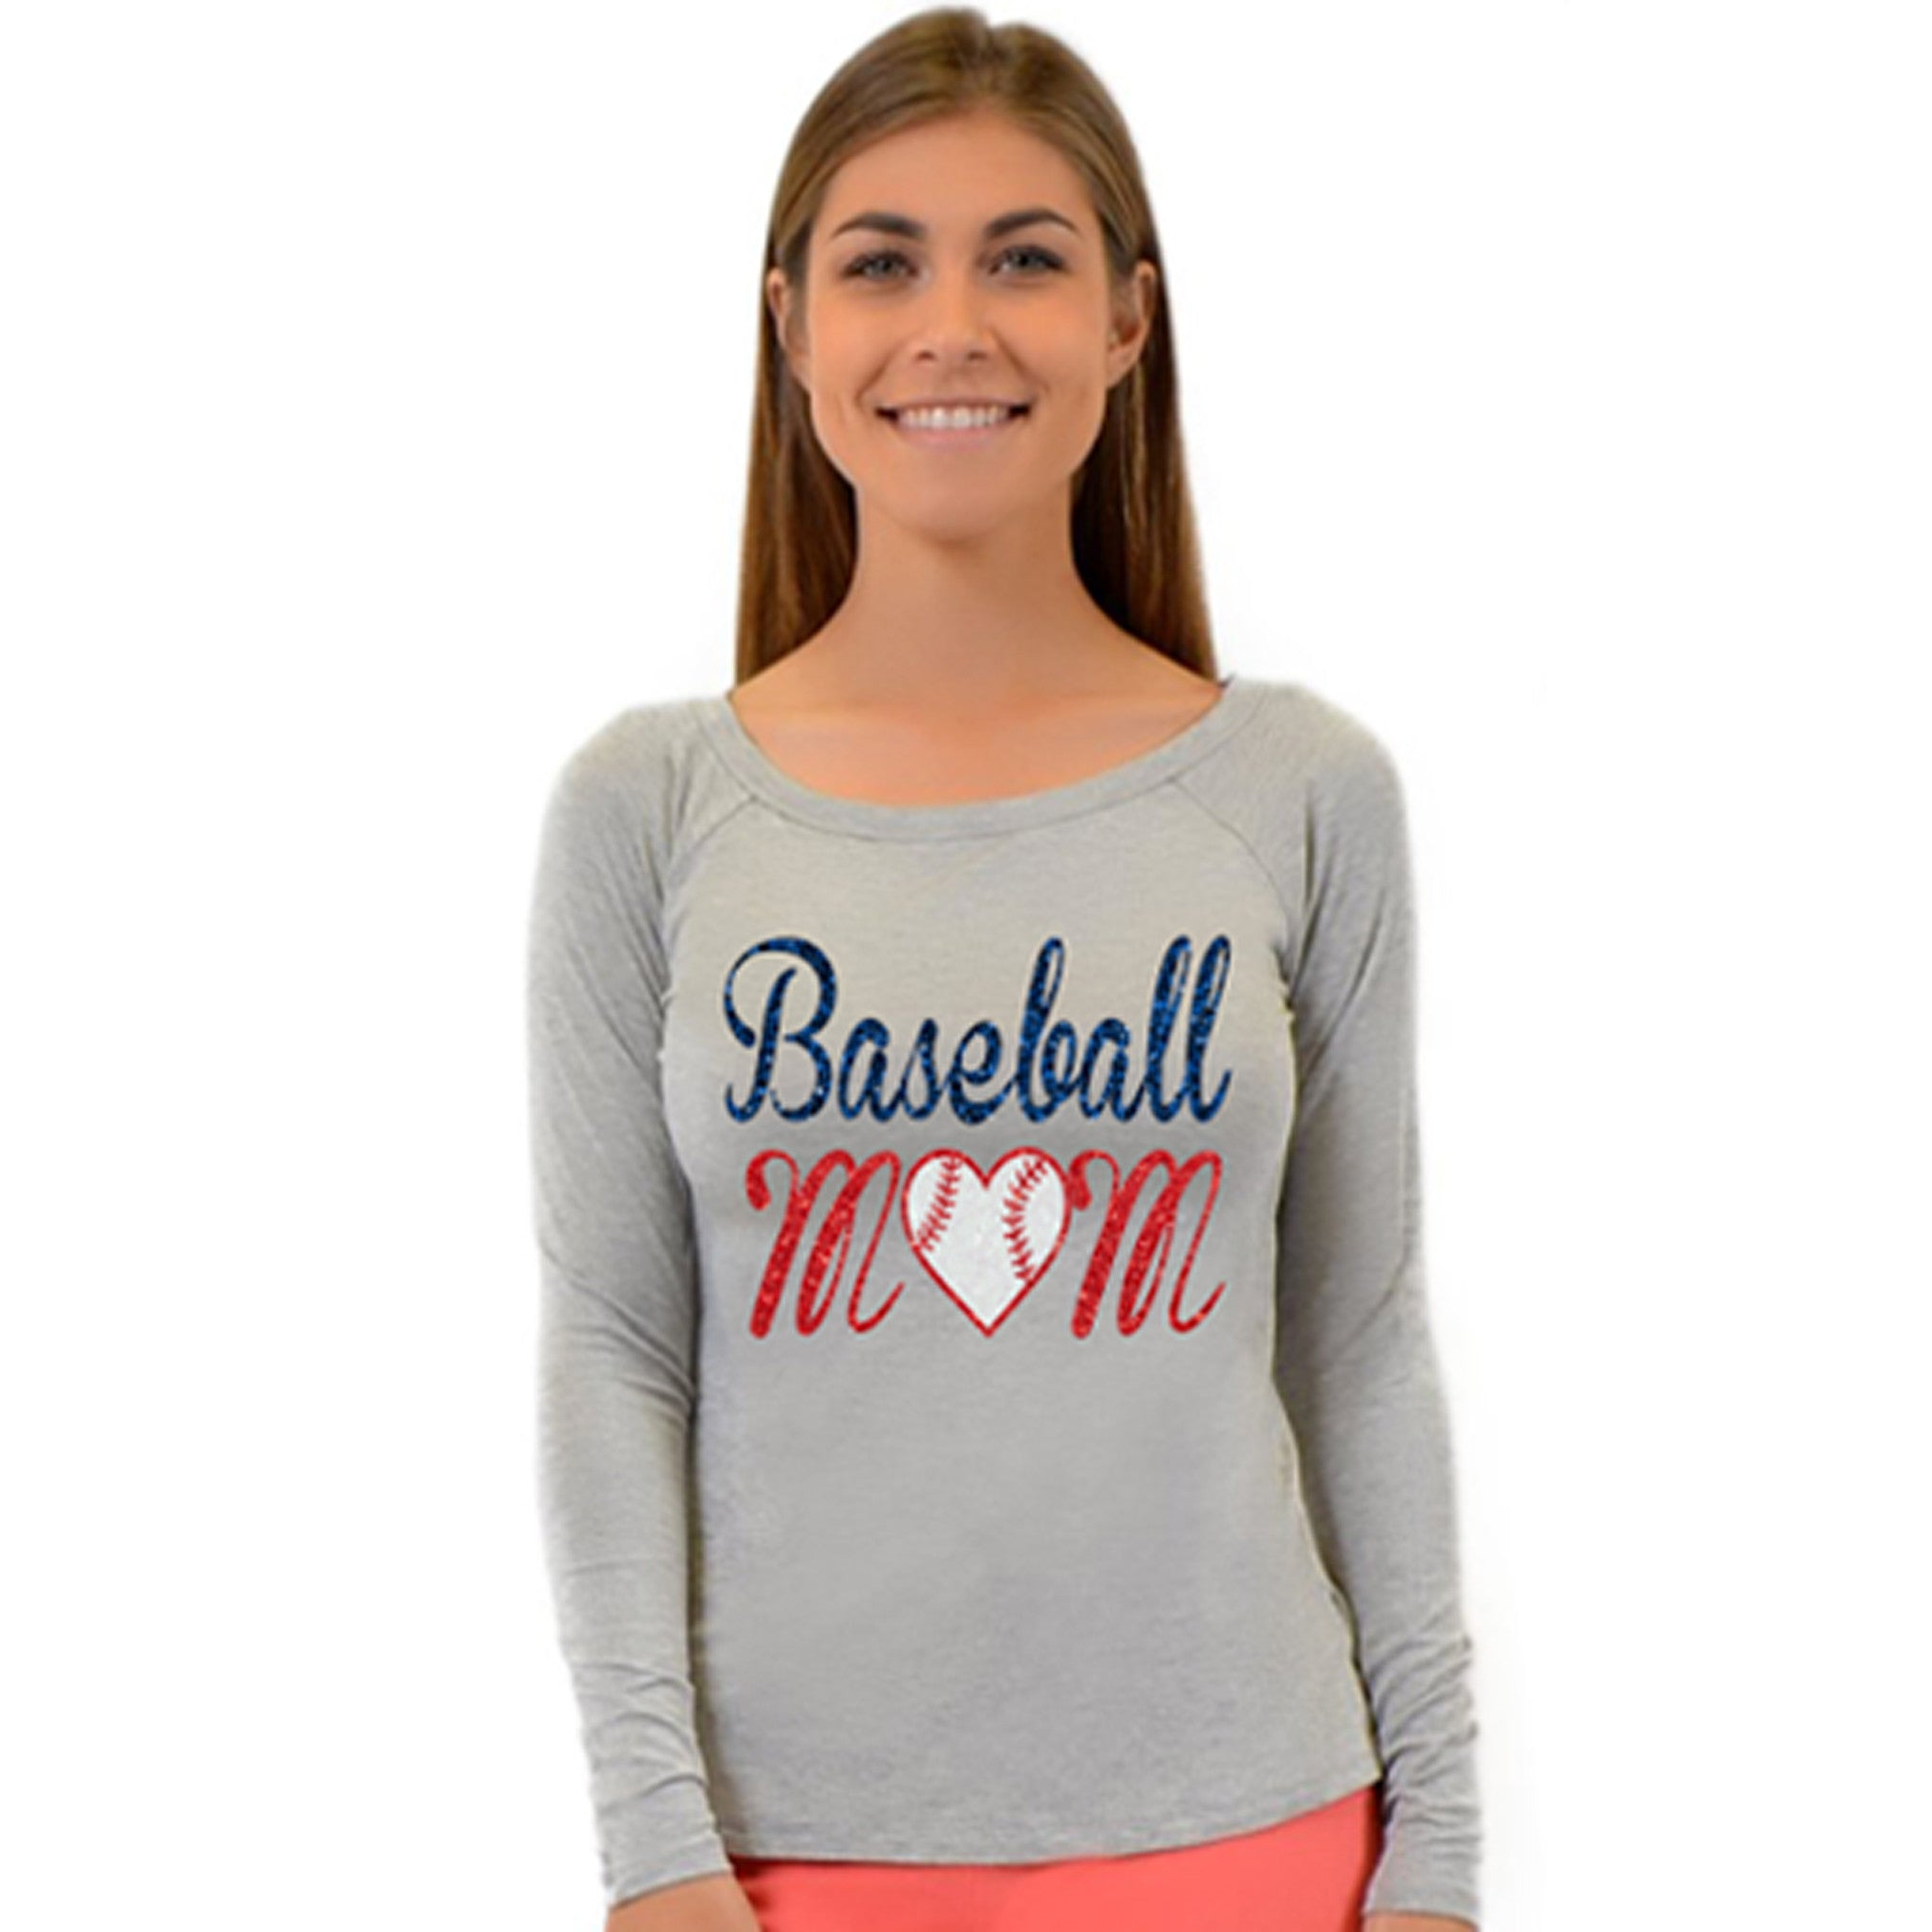 Plus Size Long Sleeve Baseball Mom Top